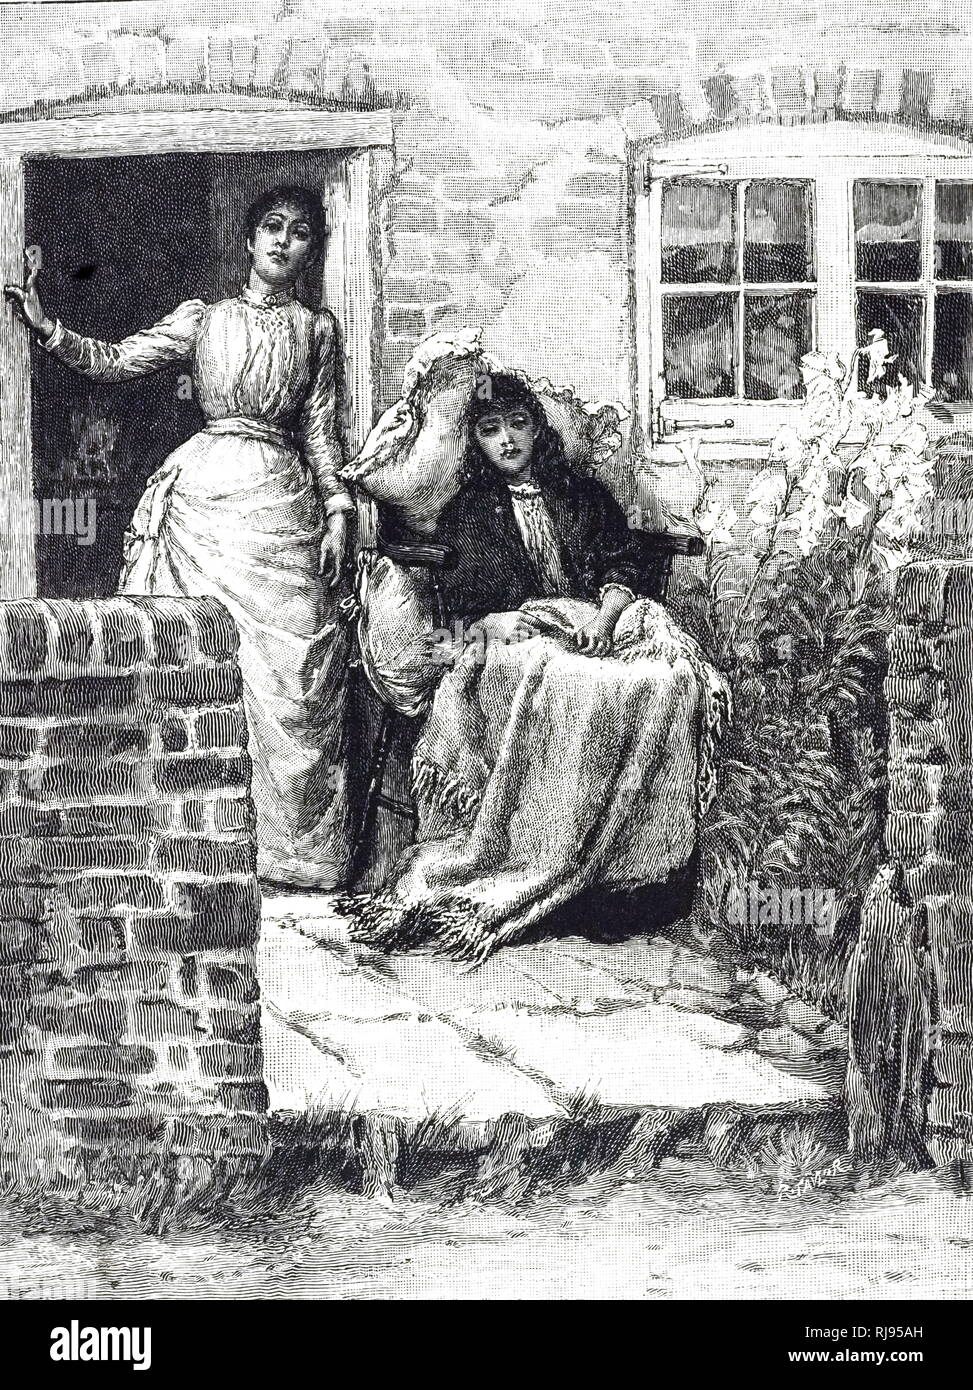 An engraving depicting a sickly woman, most likely suffering from consumption, resting in a chair outside. Dated 19th century - Stock Image